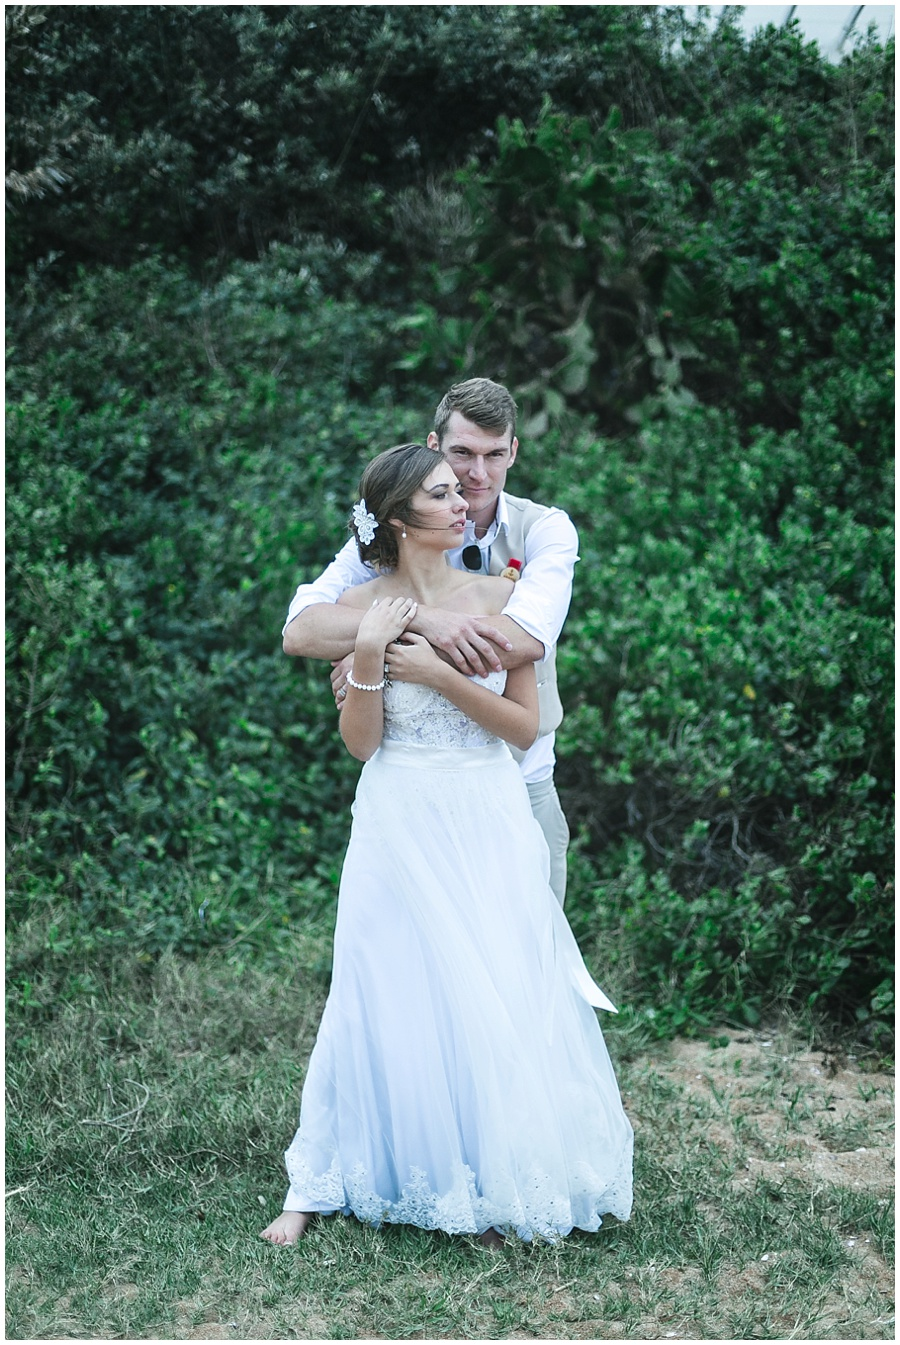 Chantelle-Darren-Wedding-Ballito-Bravo-Photography_0046